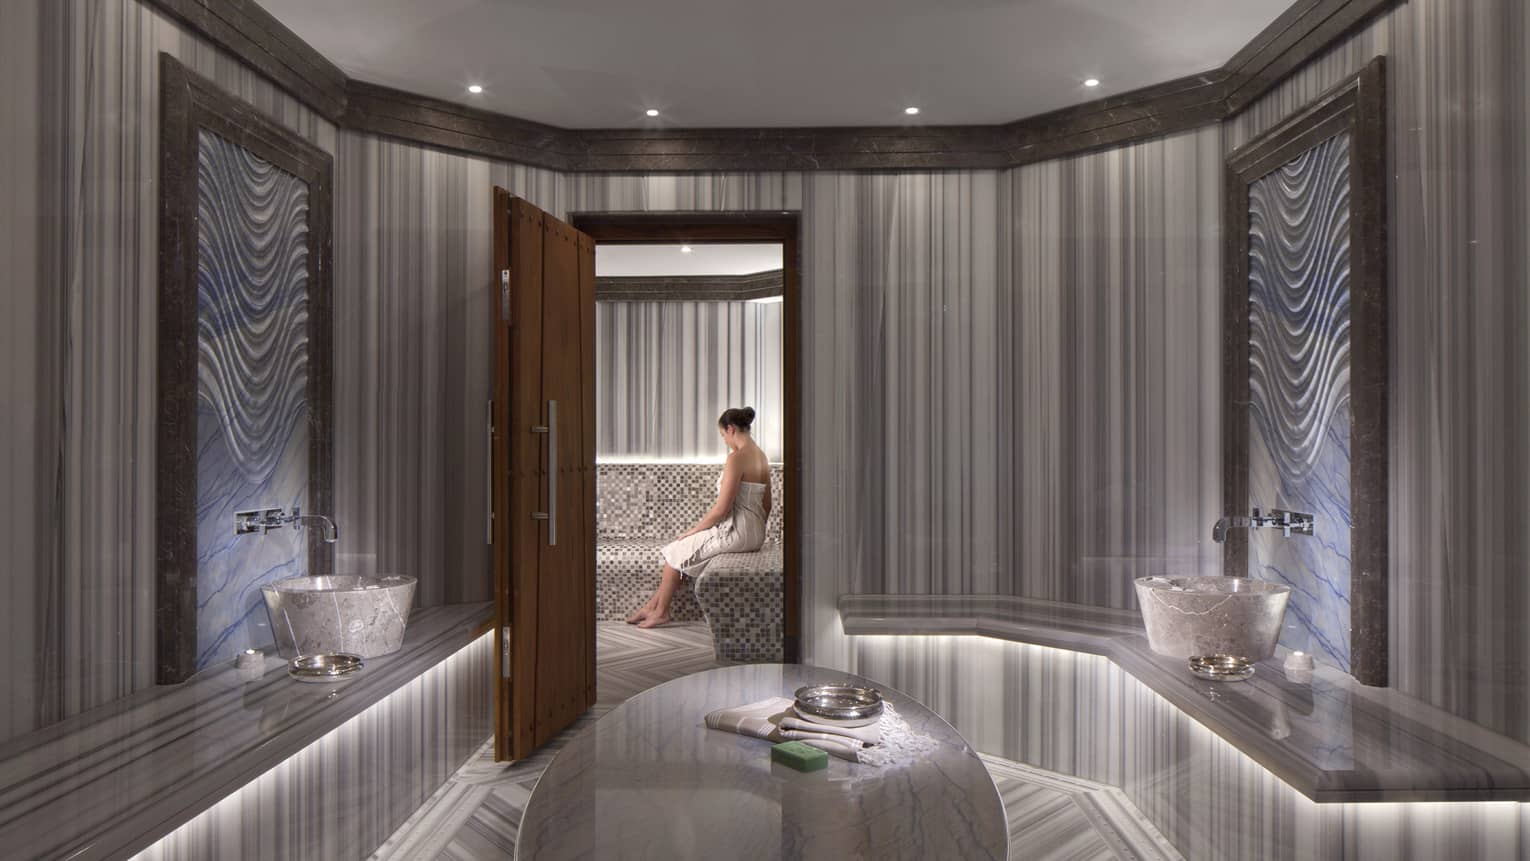 Elegant marble spa room with open wood door where woman wearing towel sits on bench